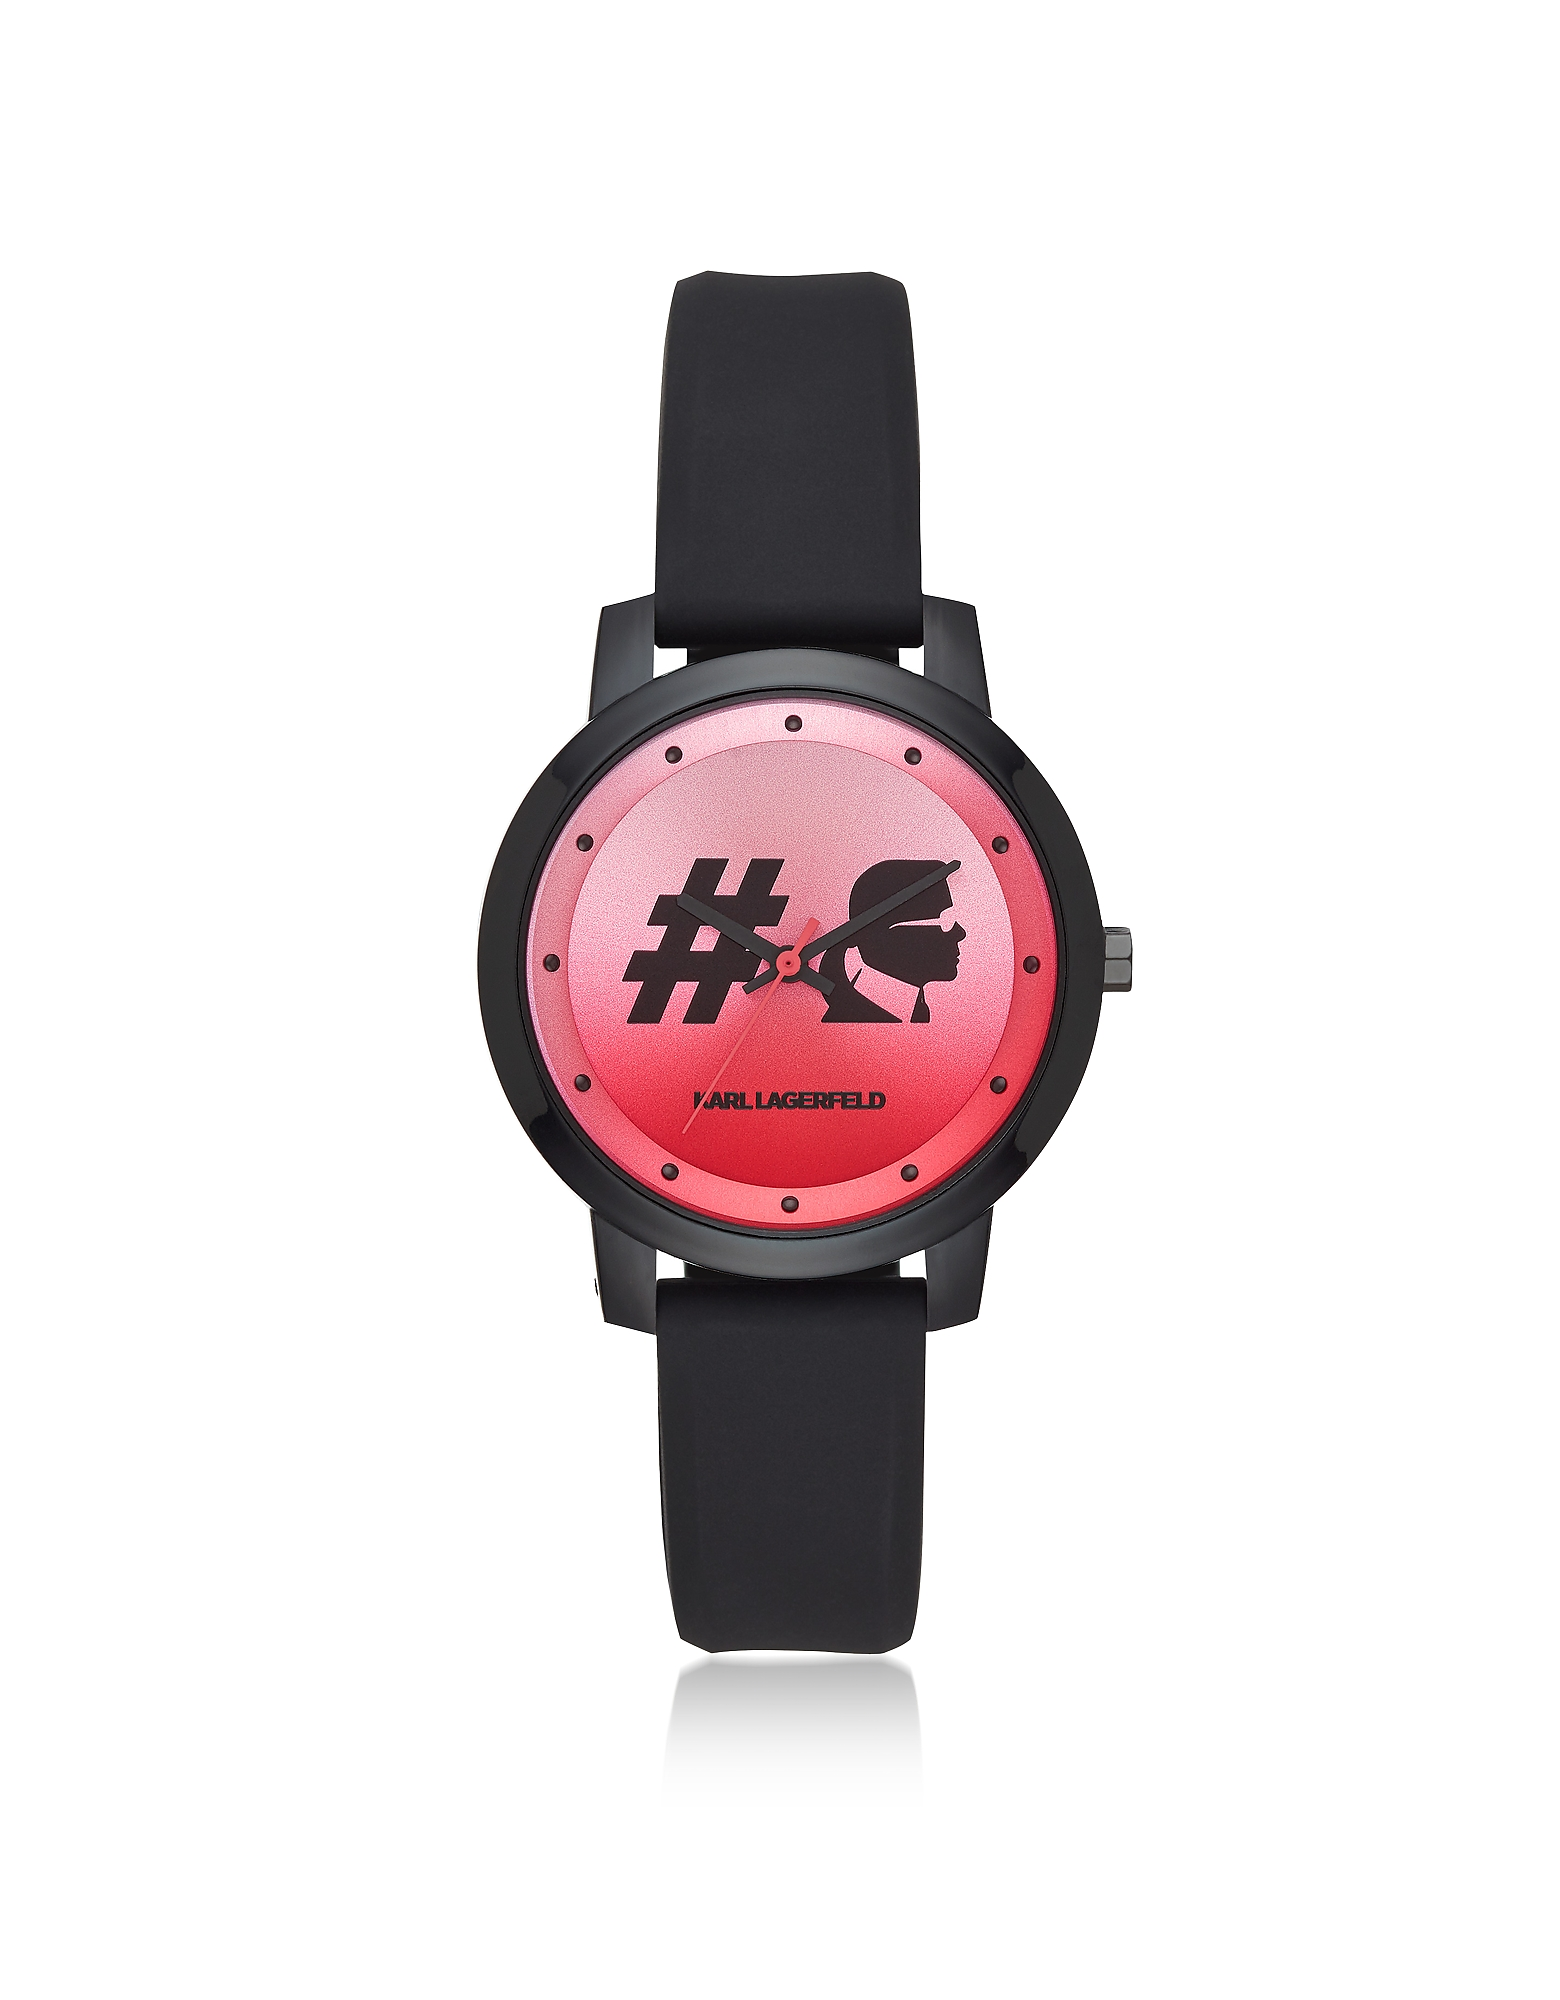 Camille Hashtag and Black Silicone Women's Watch